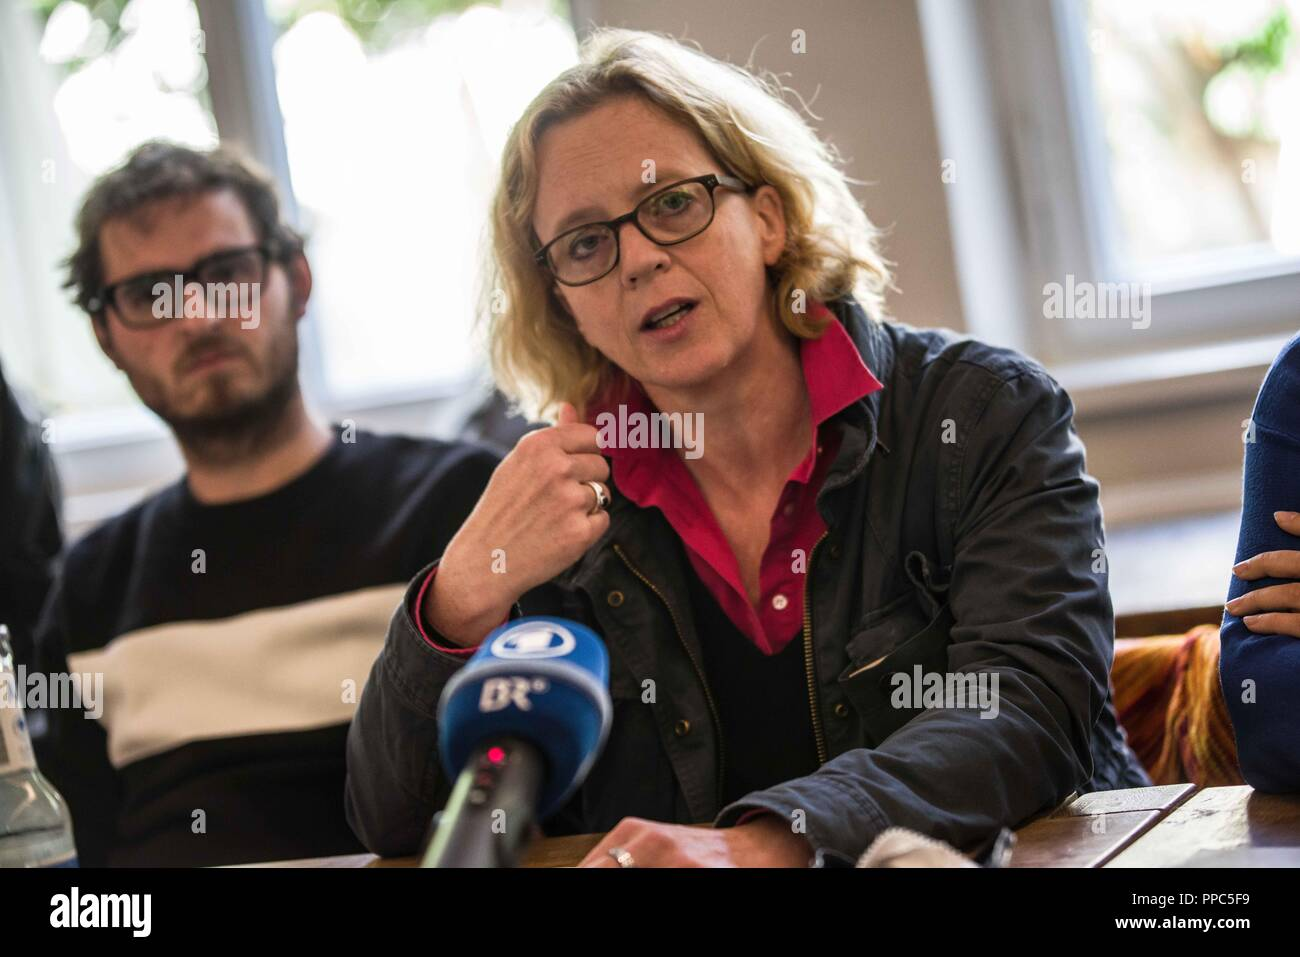 Munich, Bavaria, Germany. 25th Sep, 2018. NATASCHA KOHNEN of the SPD, who also revealed she has a migration background, thus personally involved with the themes people of color and other foreigners face in Germany. Citing the increasing politics of fear and attacks on civil and human rights, some 55 civil groups, organizations, and political parties have organized a follow up to the successful Munich NoPAG demonstration against the PAG Police Assignment Laws. The groups state that the increasingly exclusionary and populistic politics of the CSU and the AfD, along with the Polizeiaufgabe - Stock Image